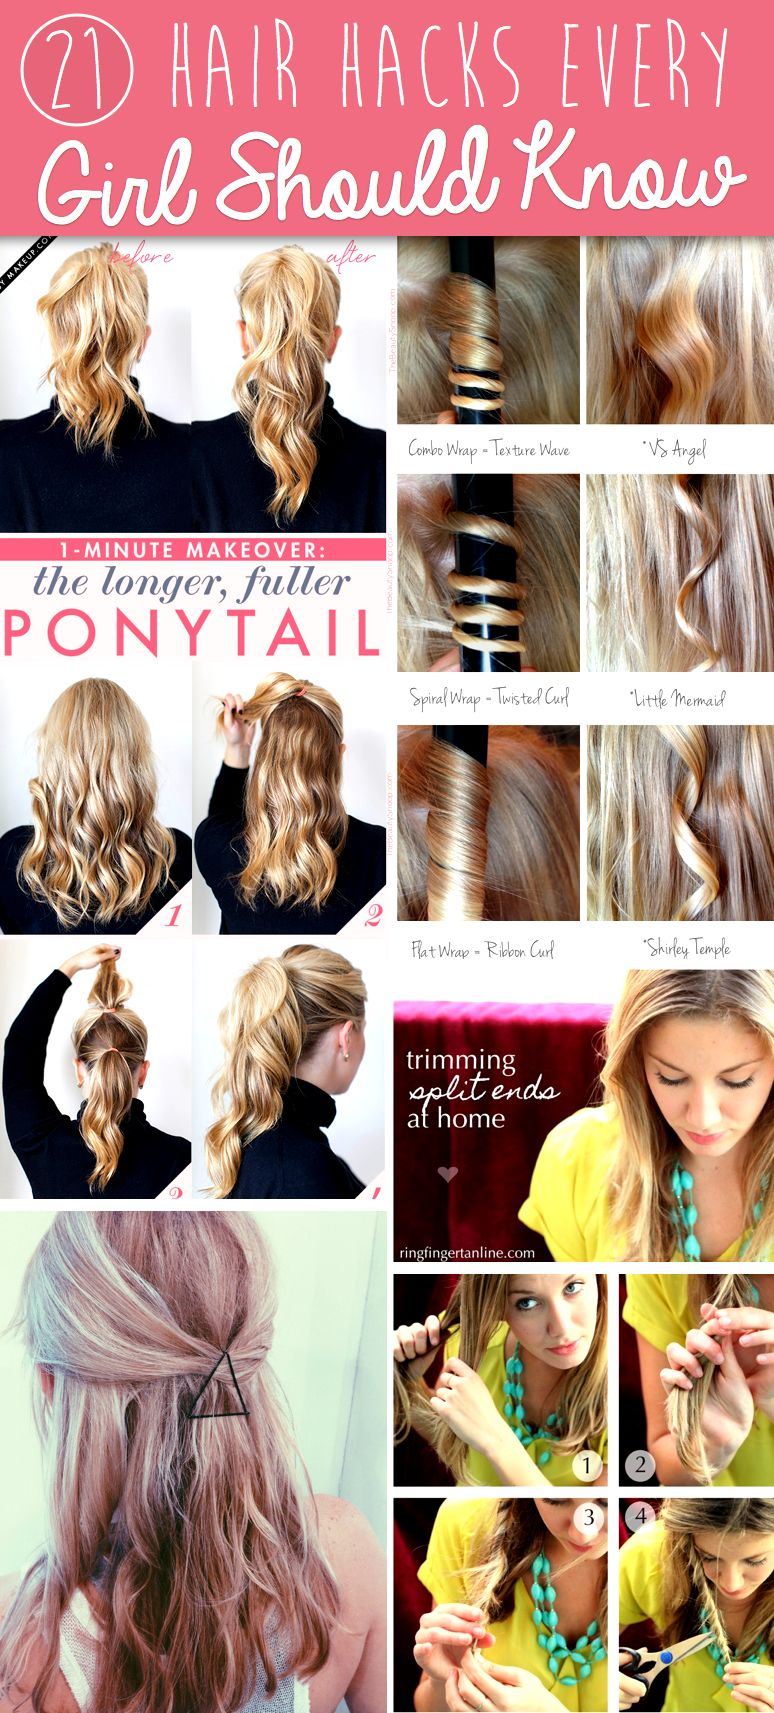 10 Hair Hacks Every Girl Should Know – Cute DIY Projects  Hair